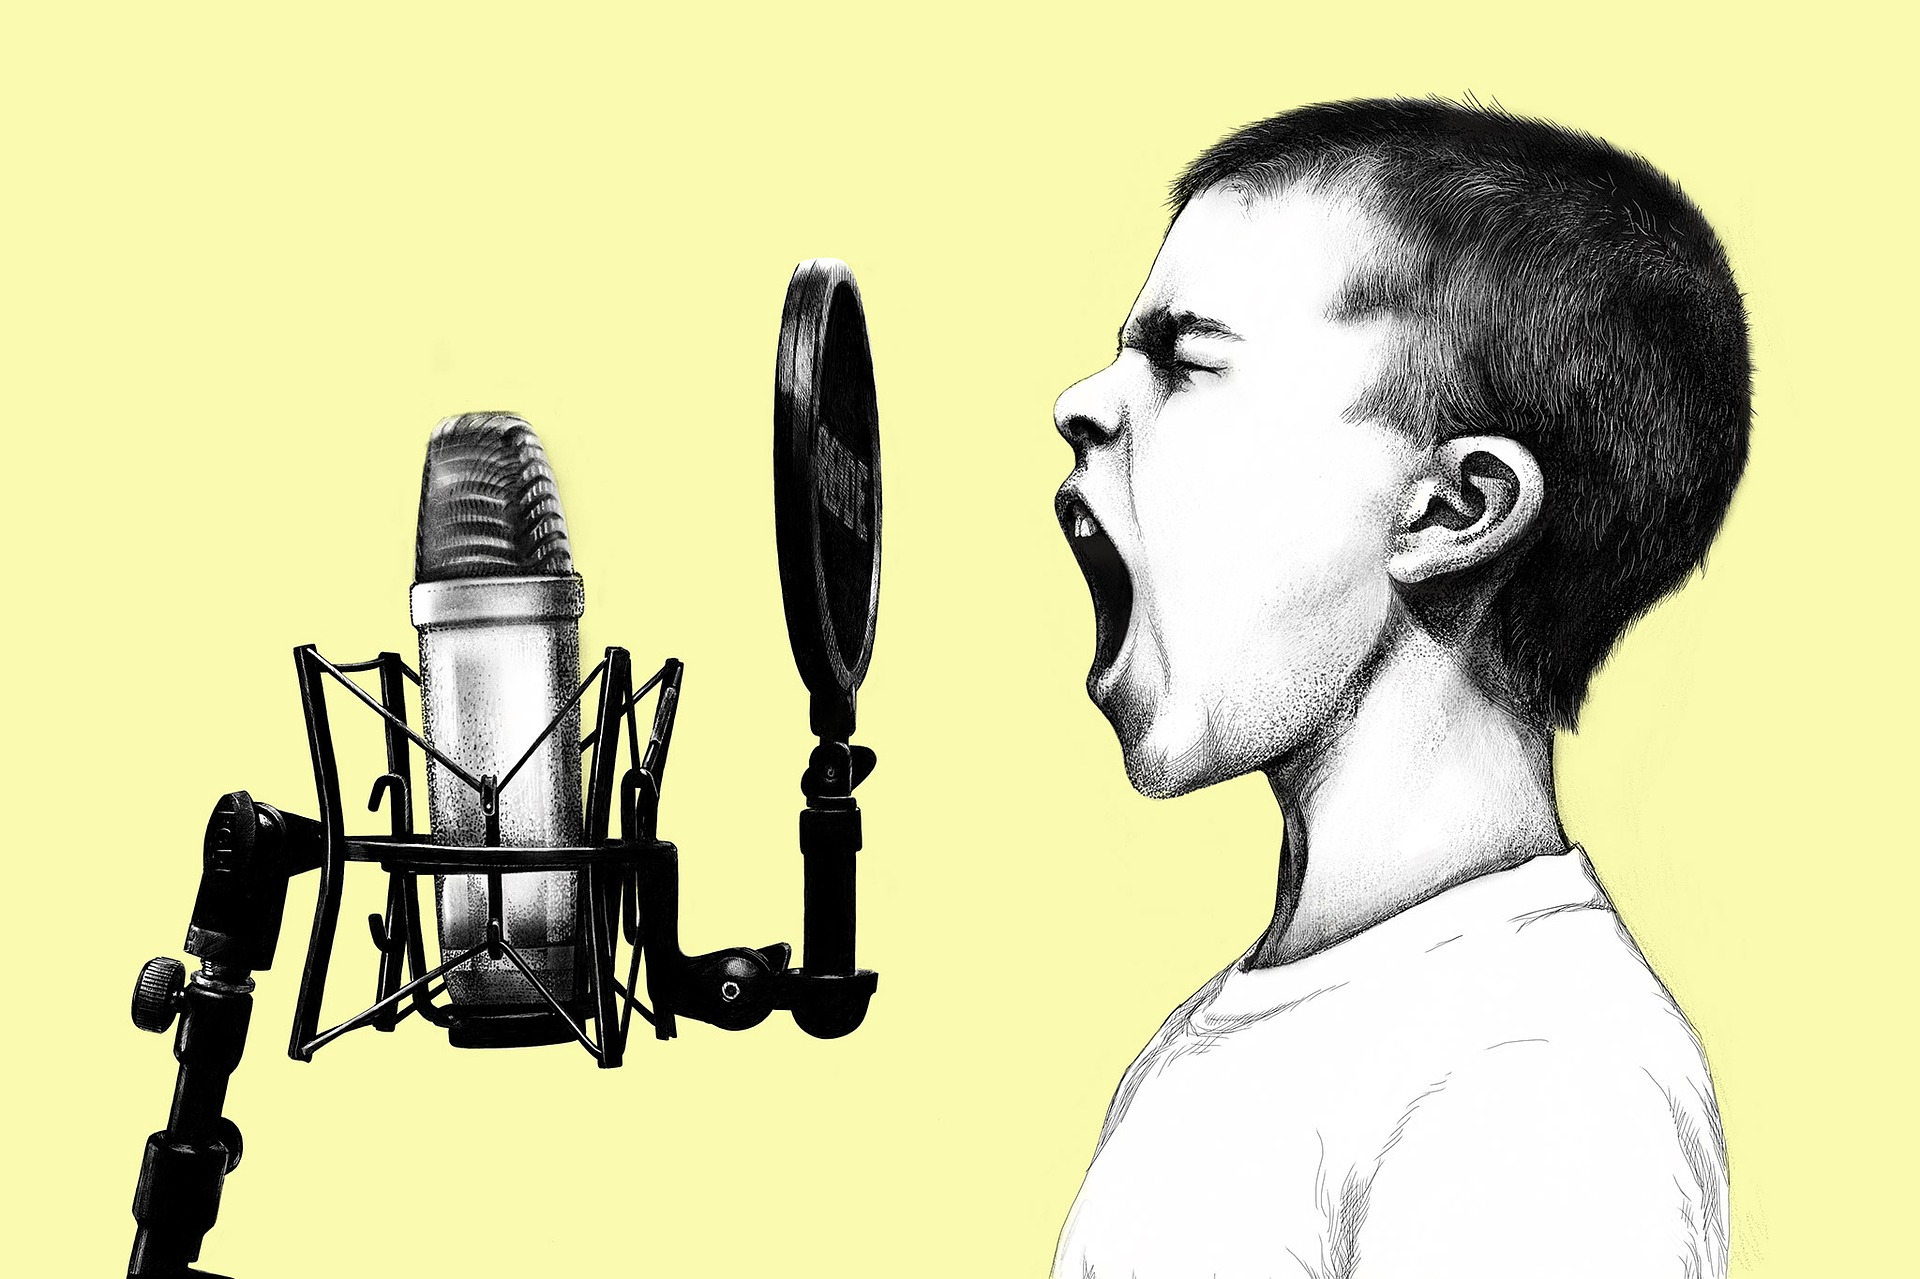 Pencil line illustration of a young boy shouting into a microphone.